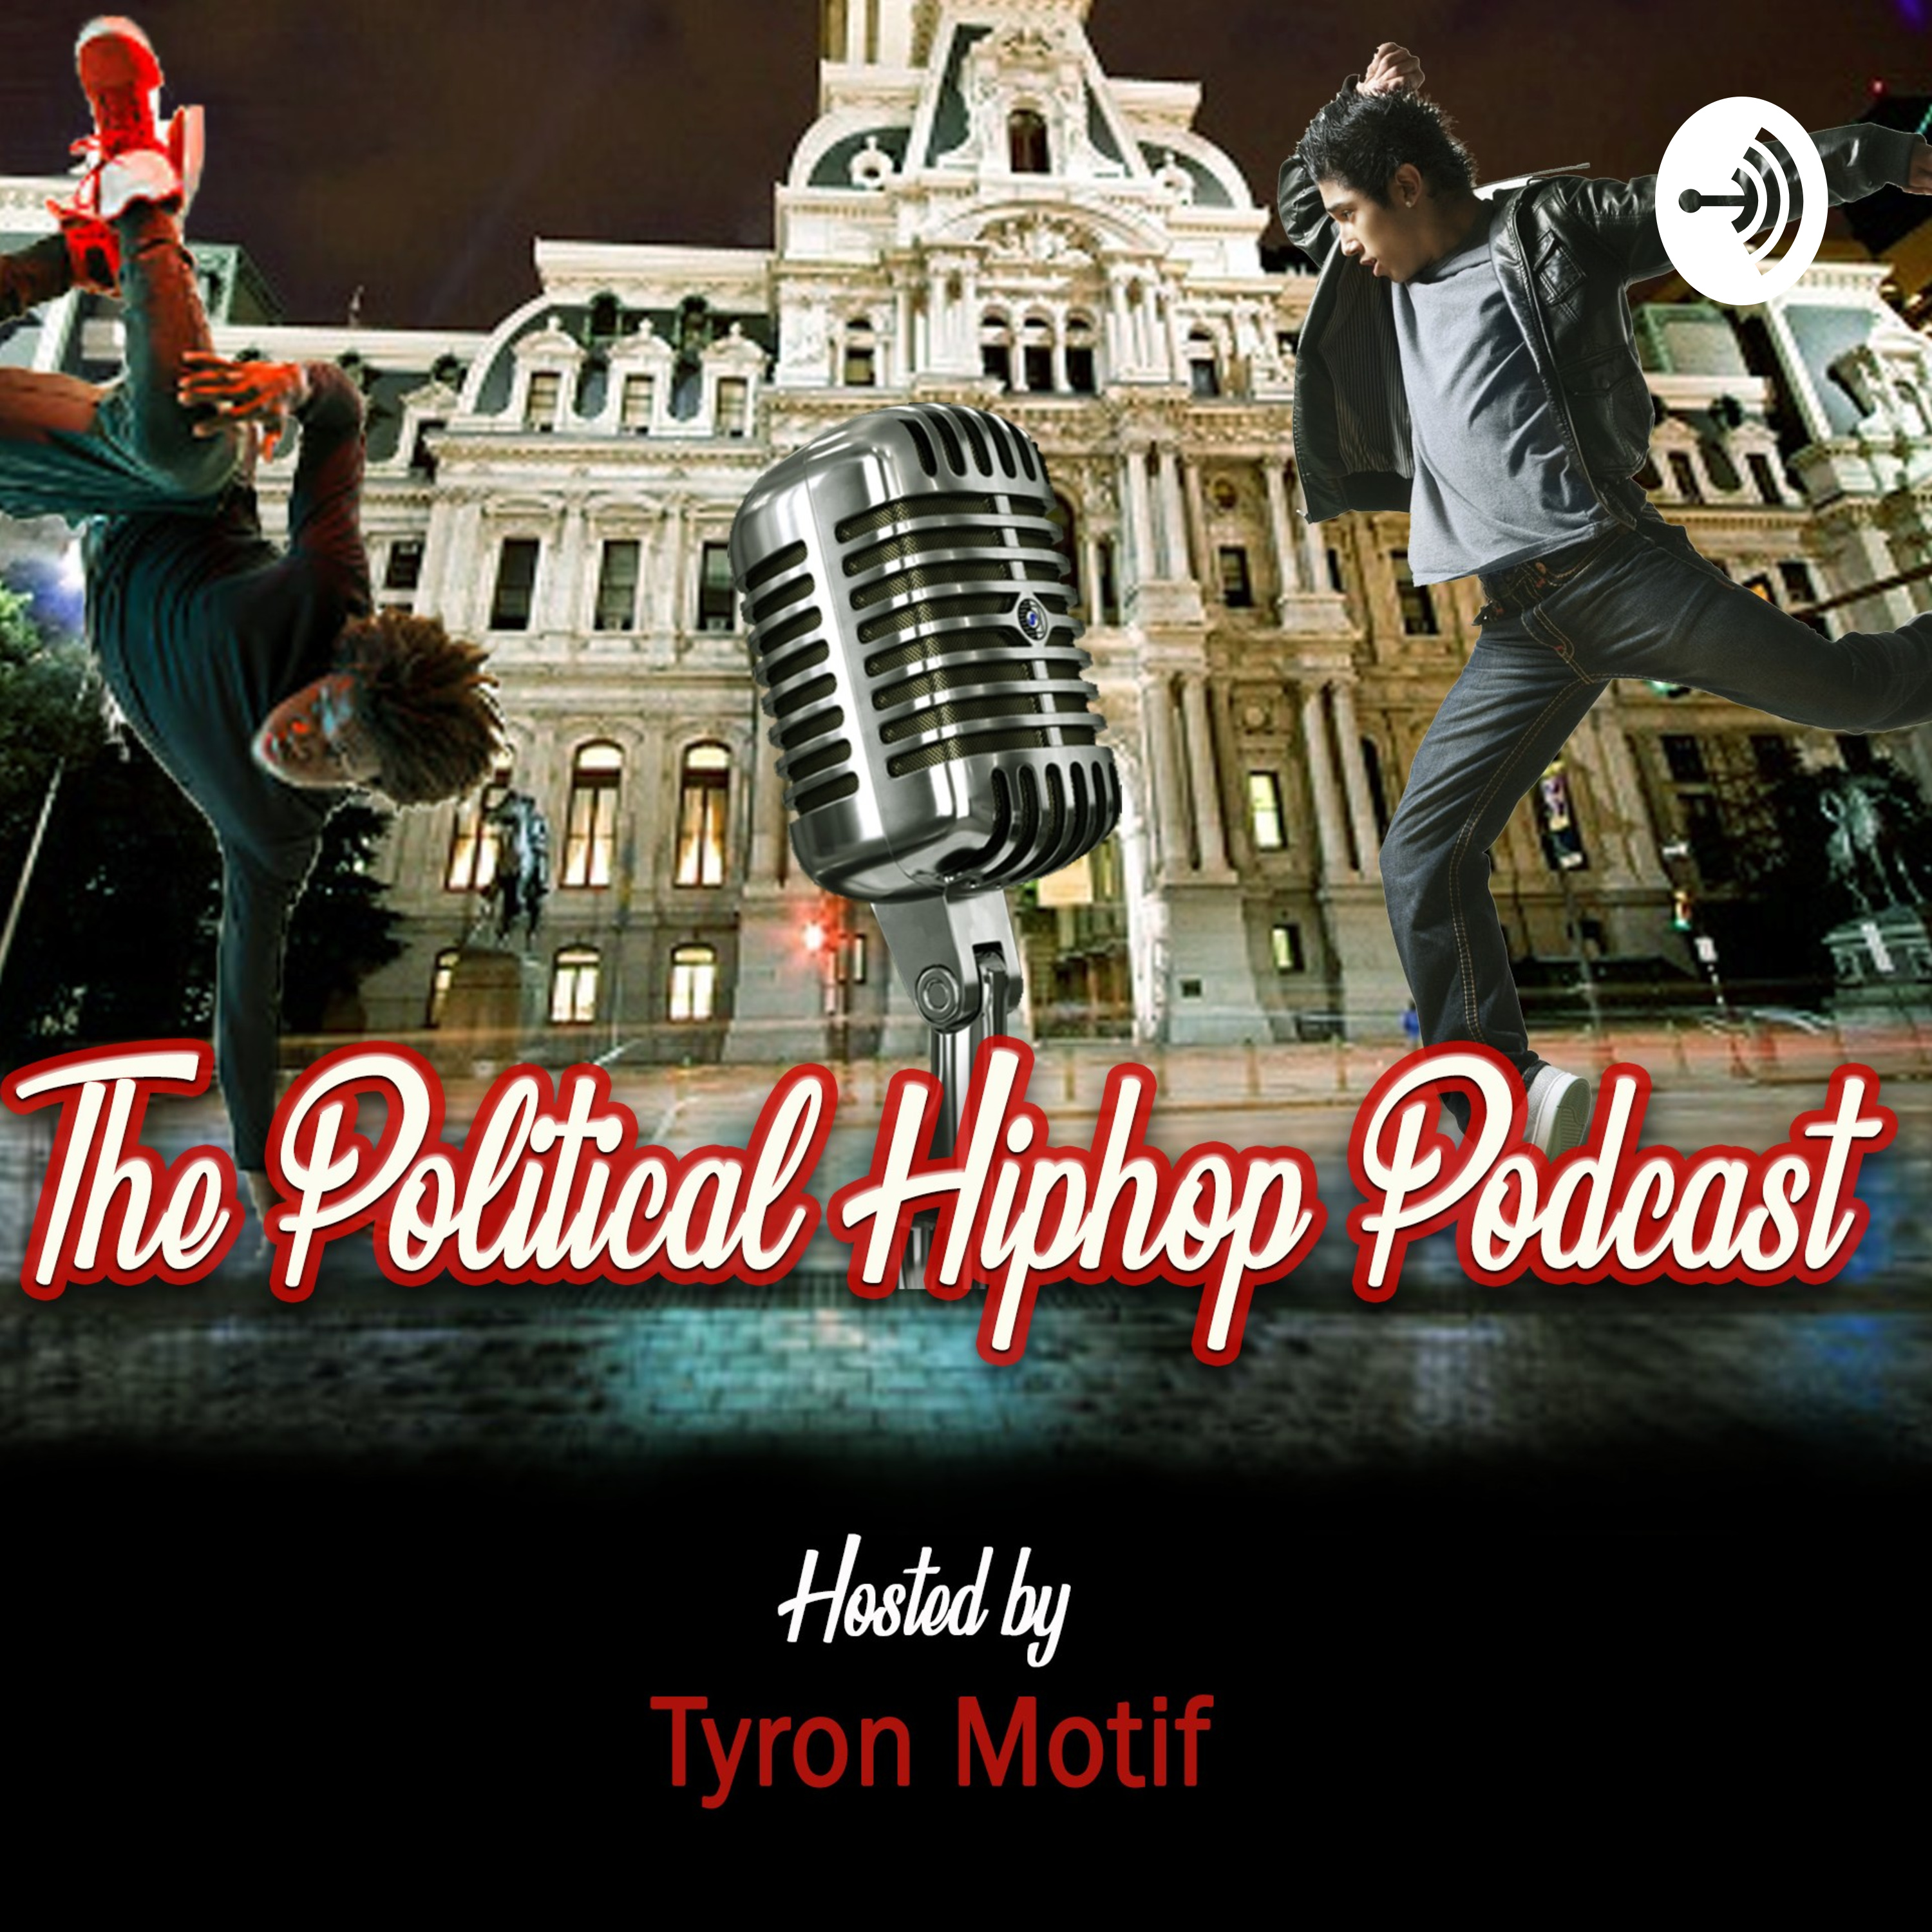 The Political Hiphop Podcast • A podcast on Anchor